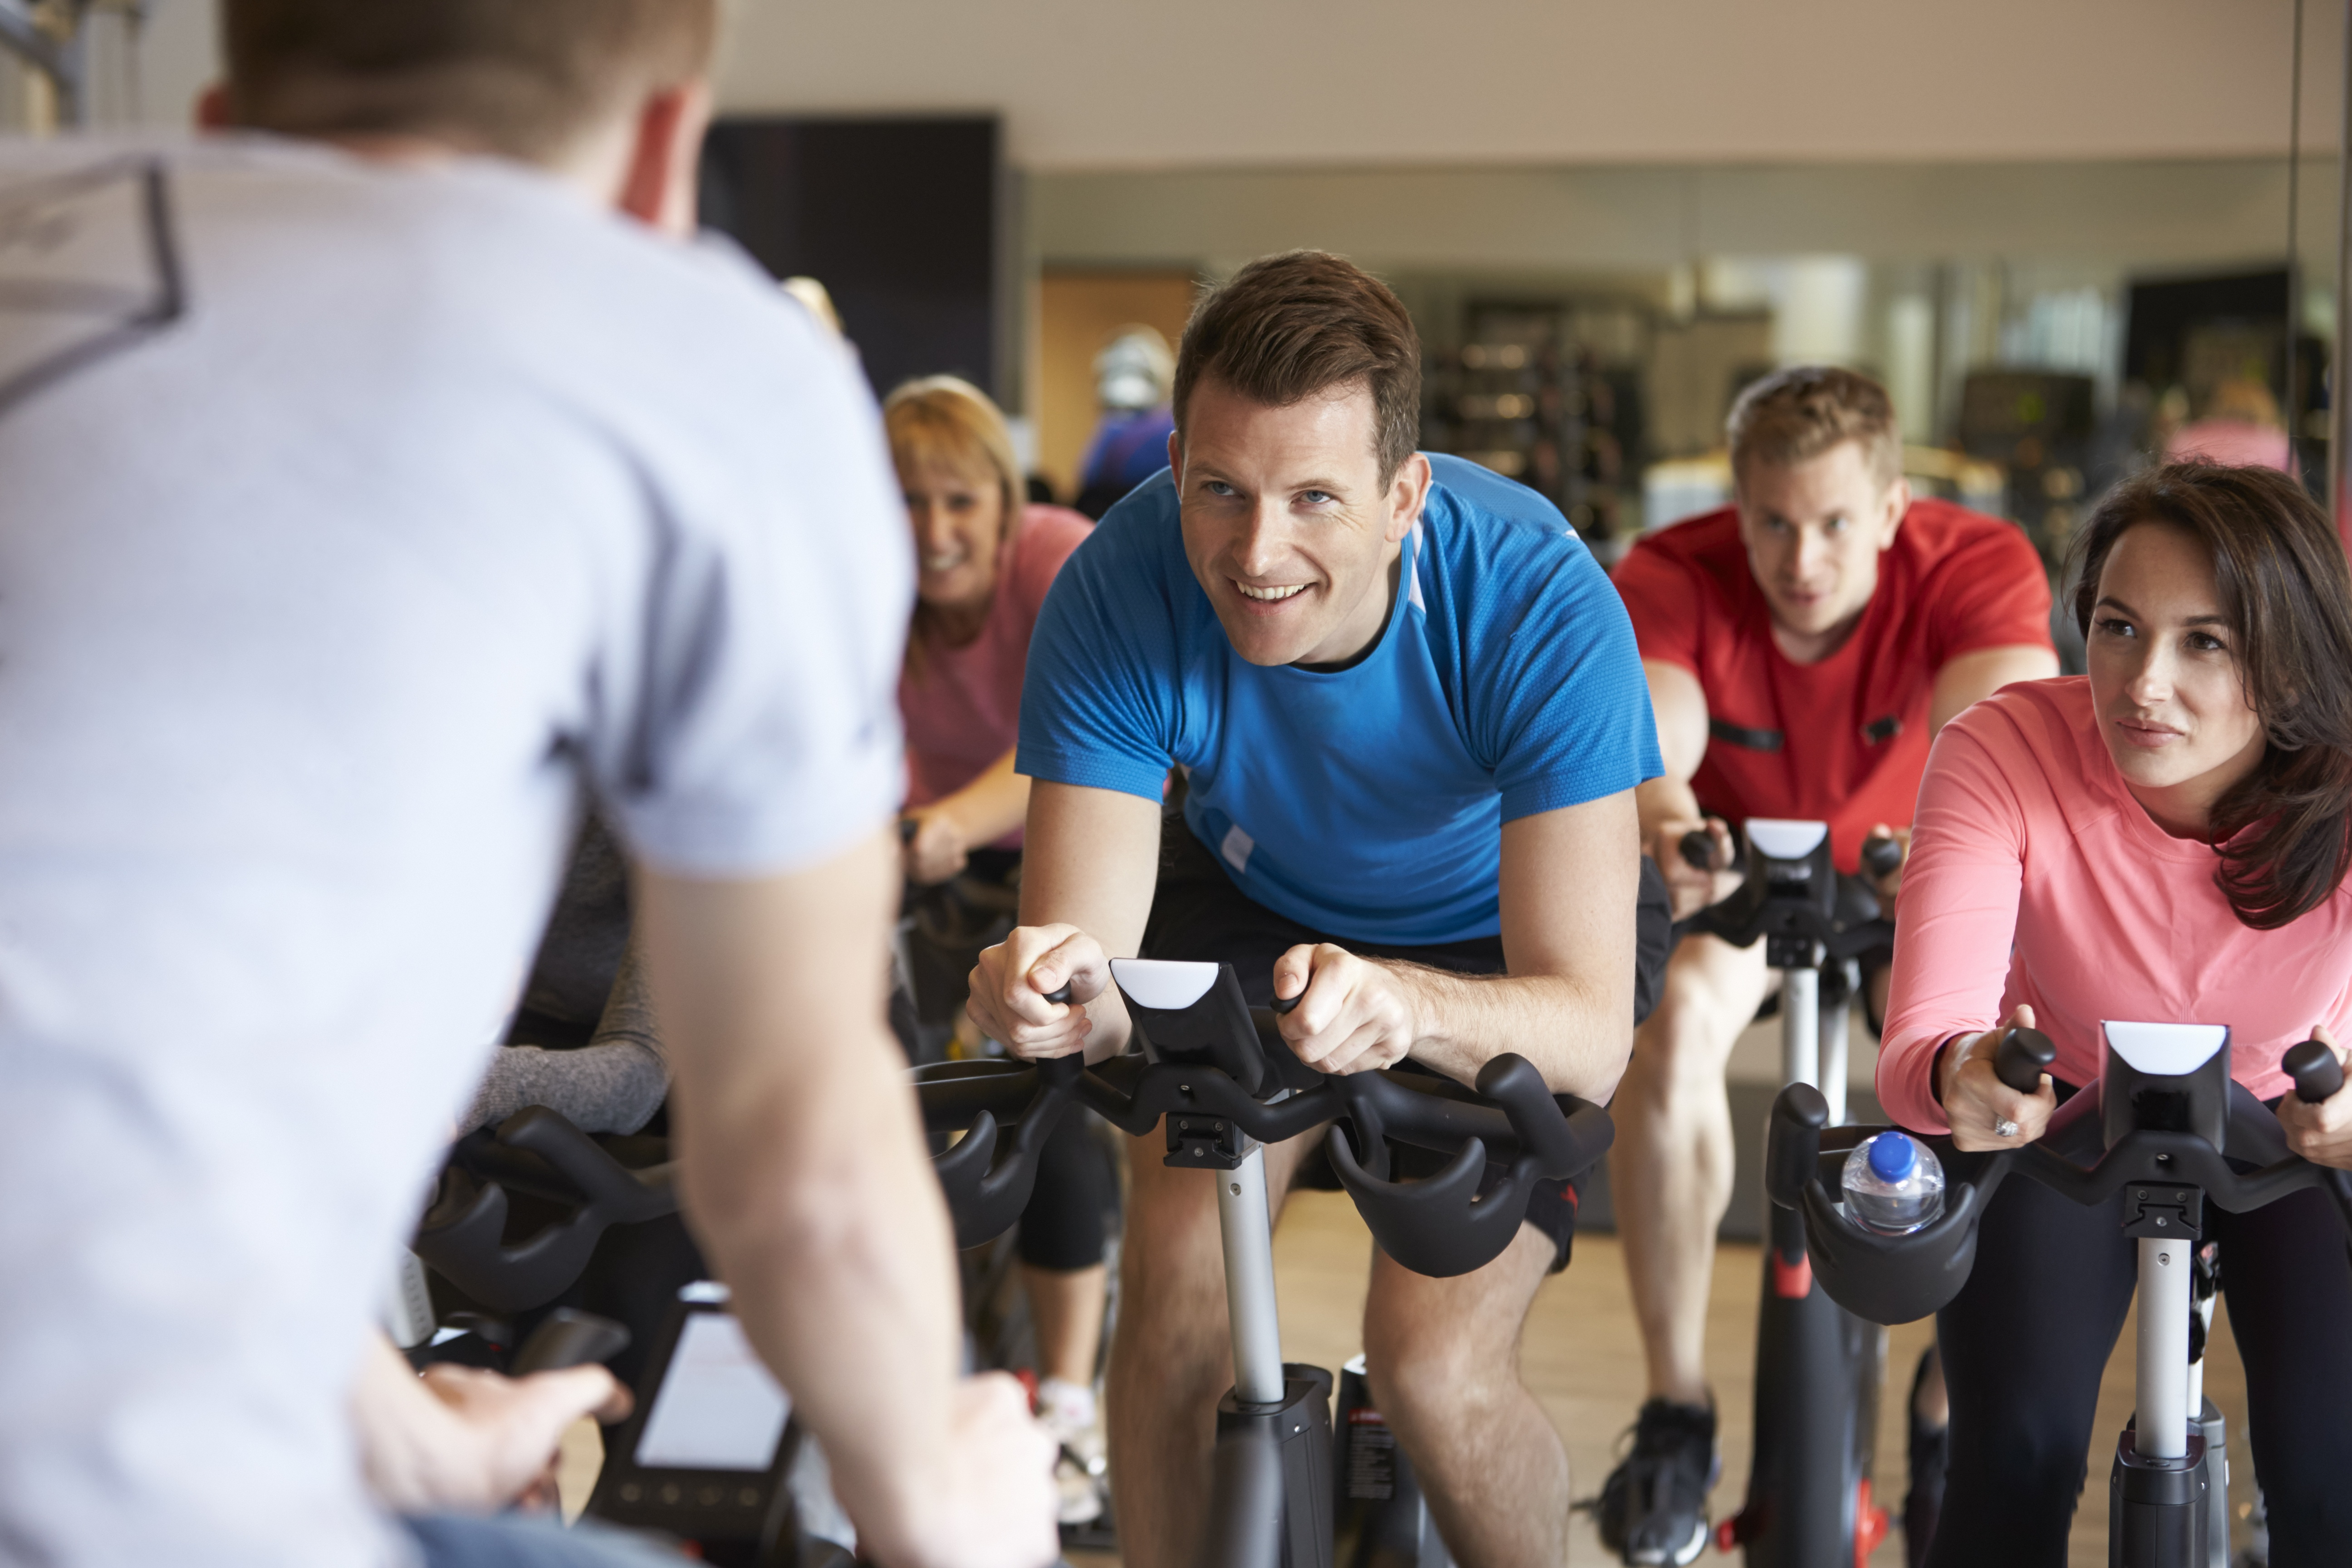 Cycle Class Group Fitness